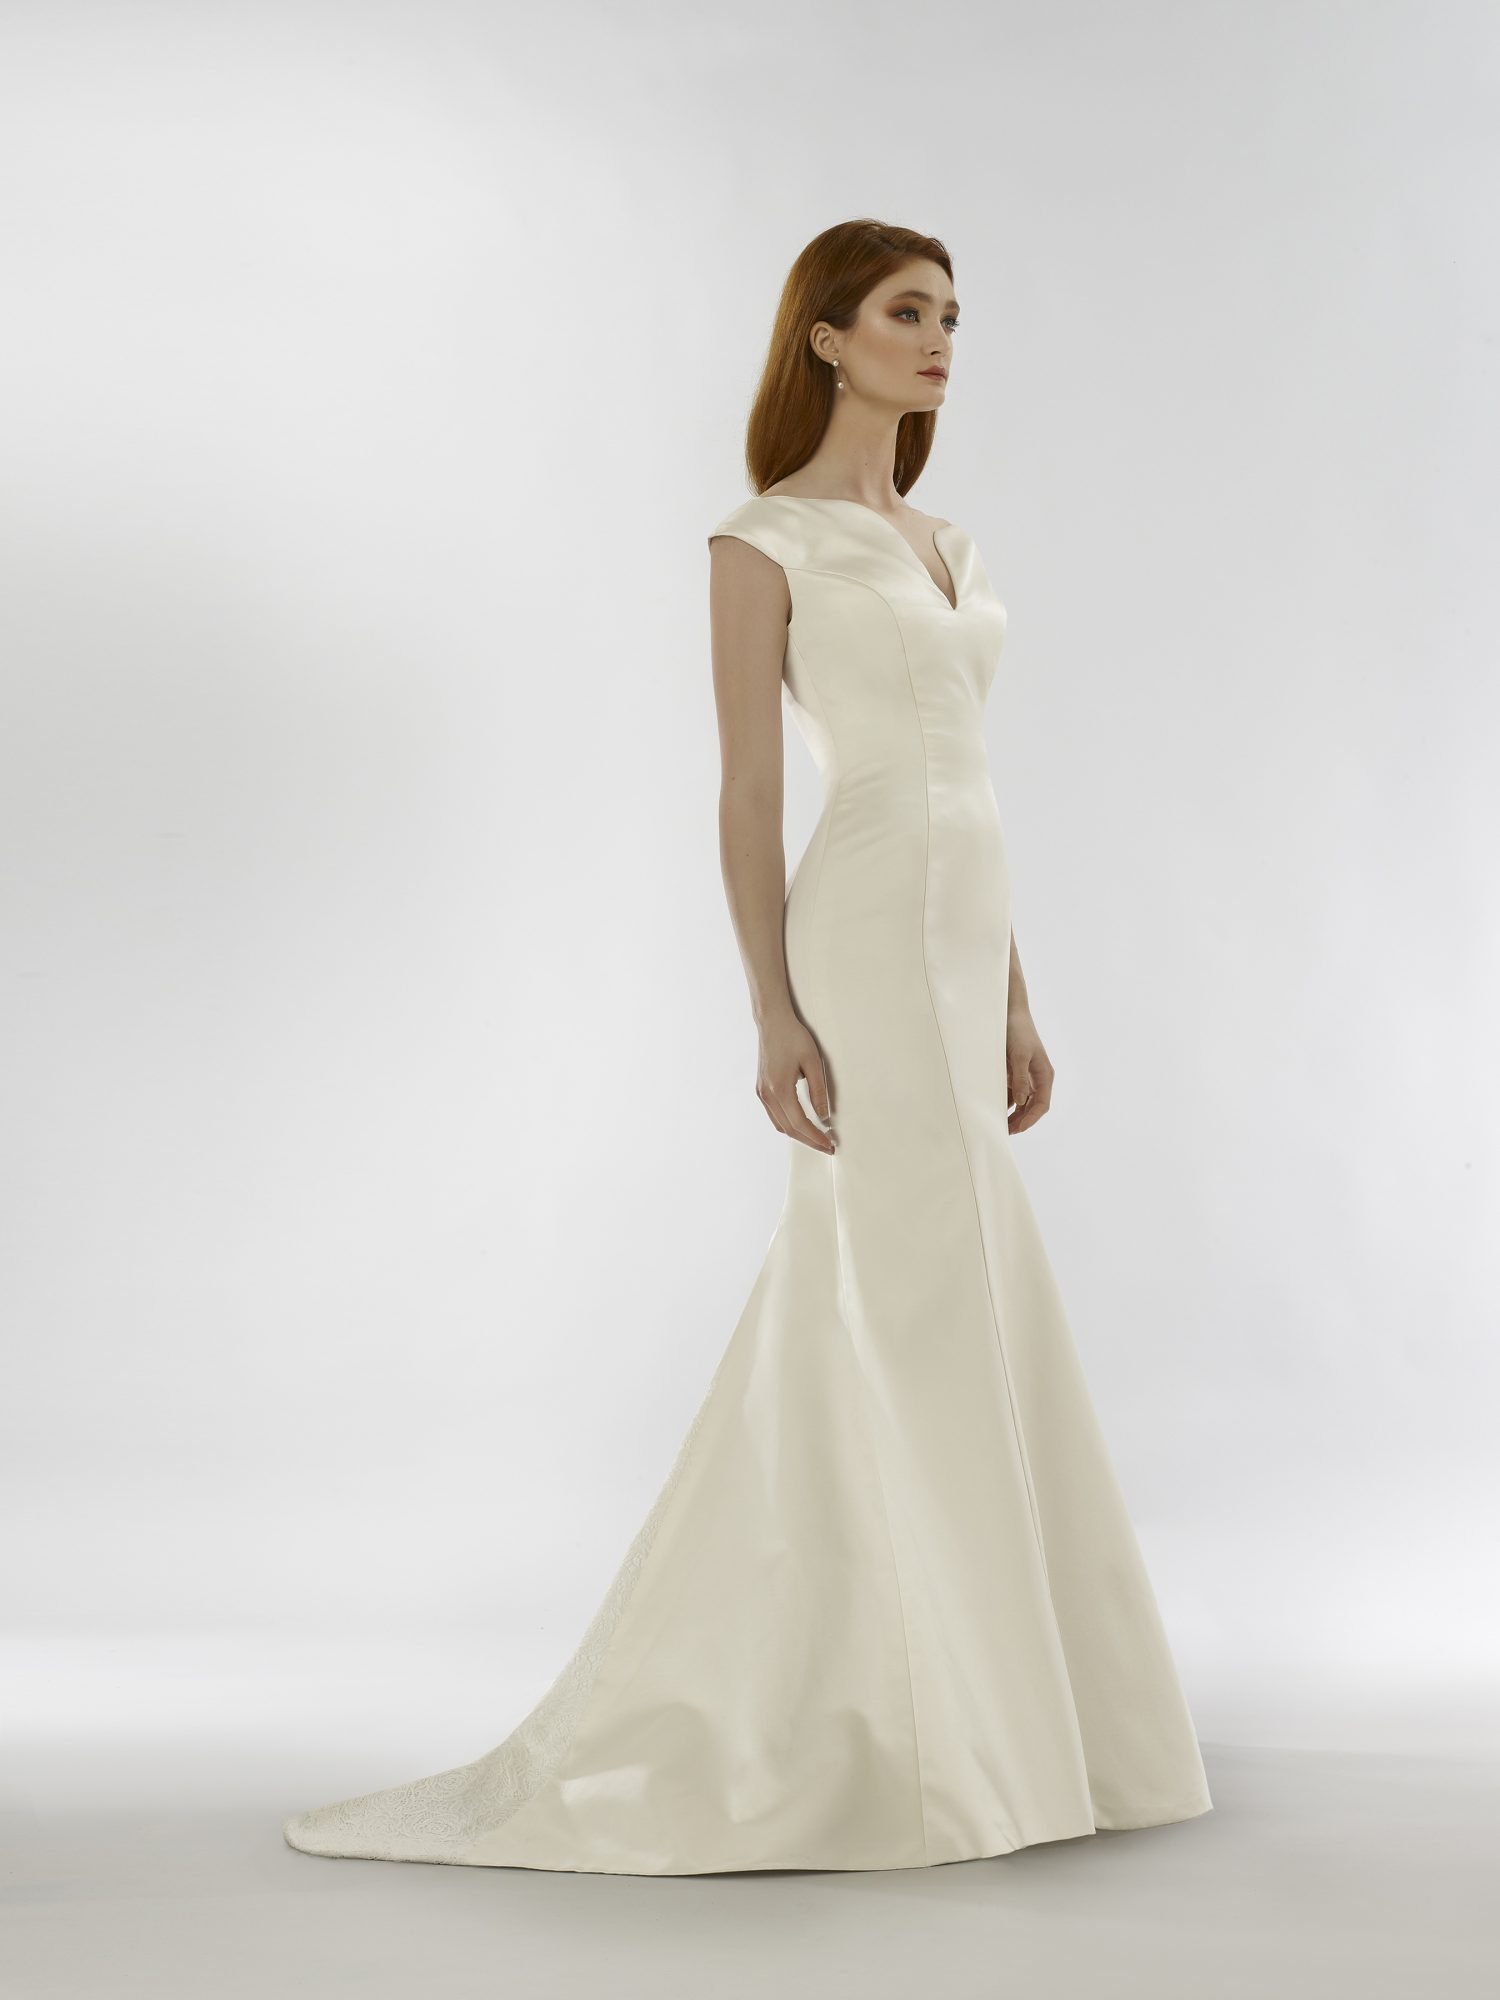 Mermaid wedding dress with V-neckline and cap sleeves